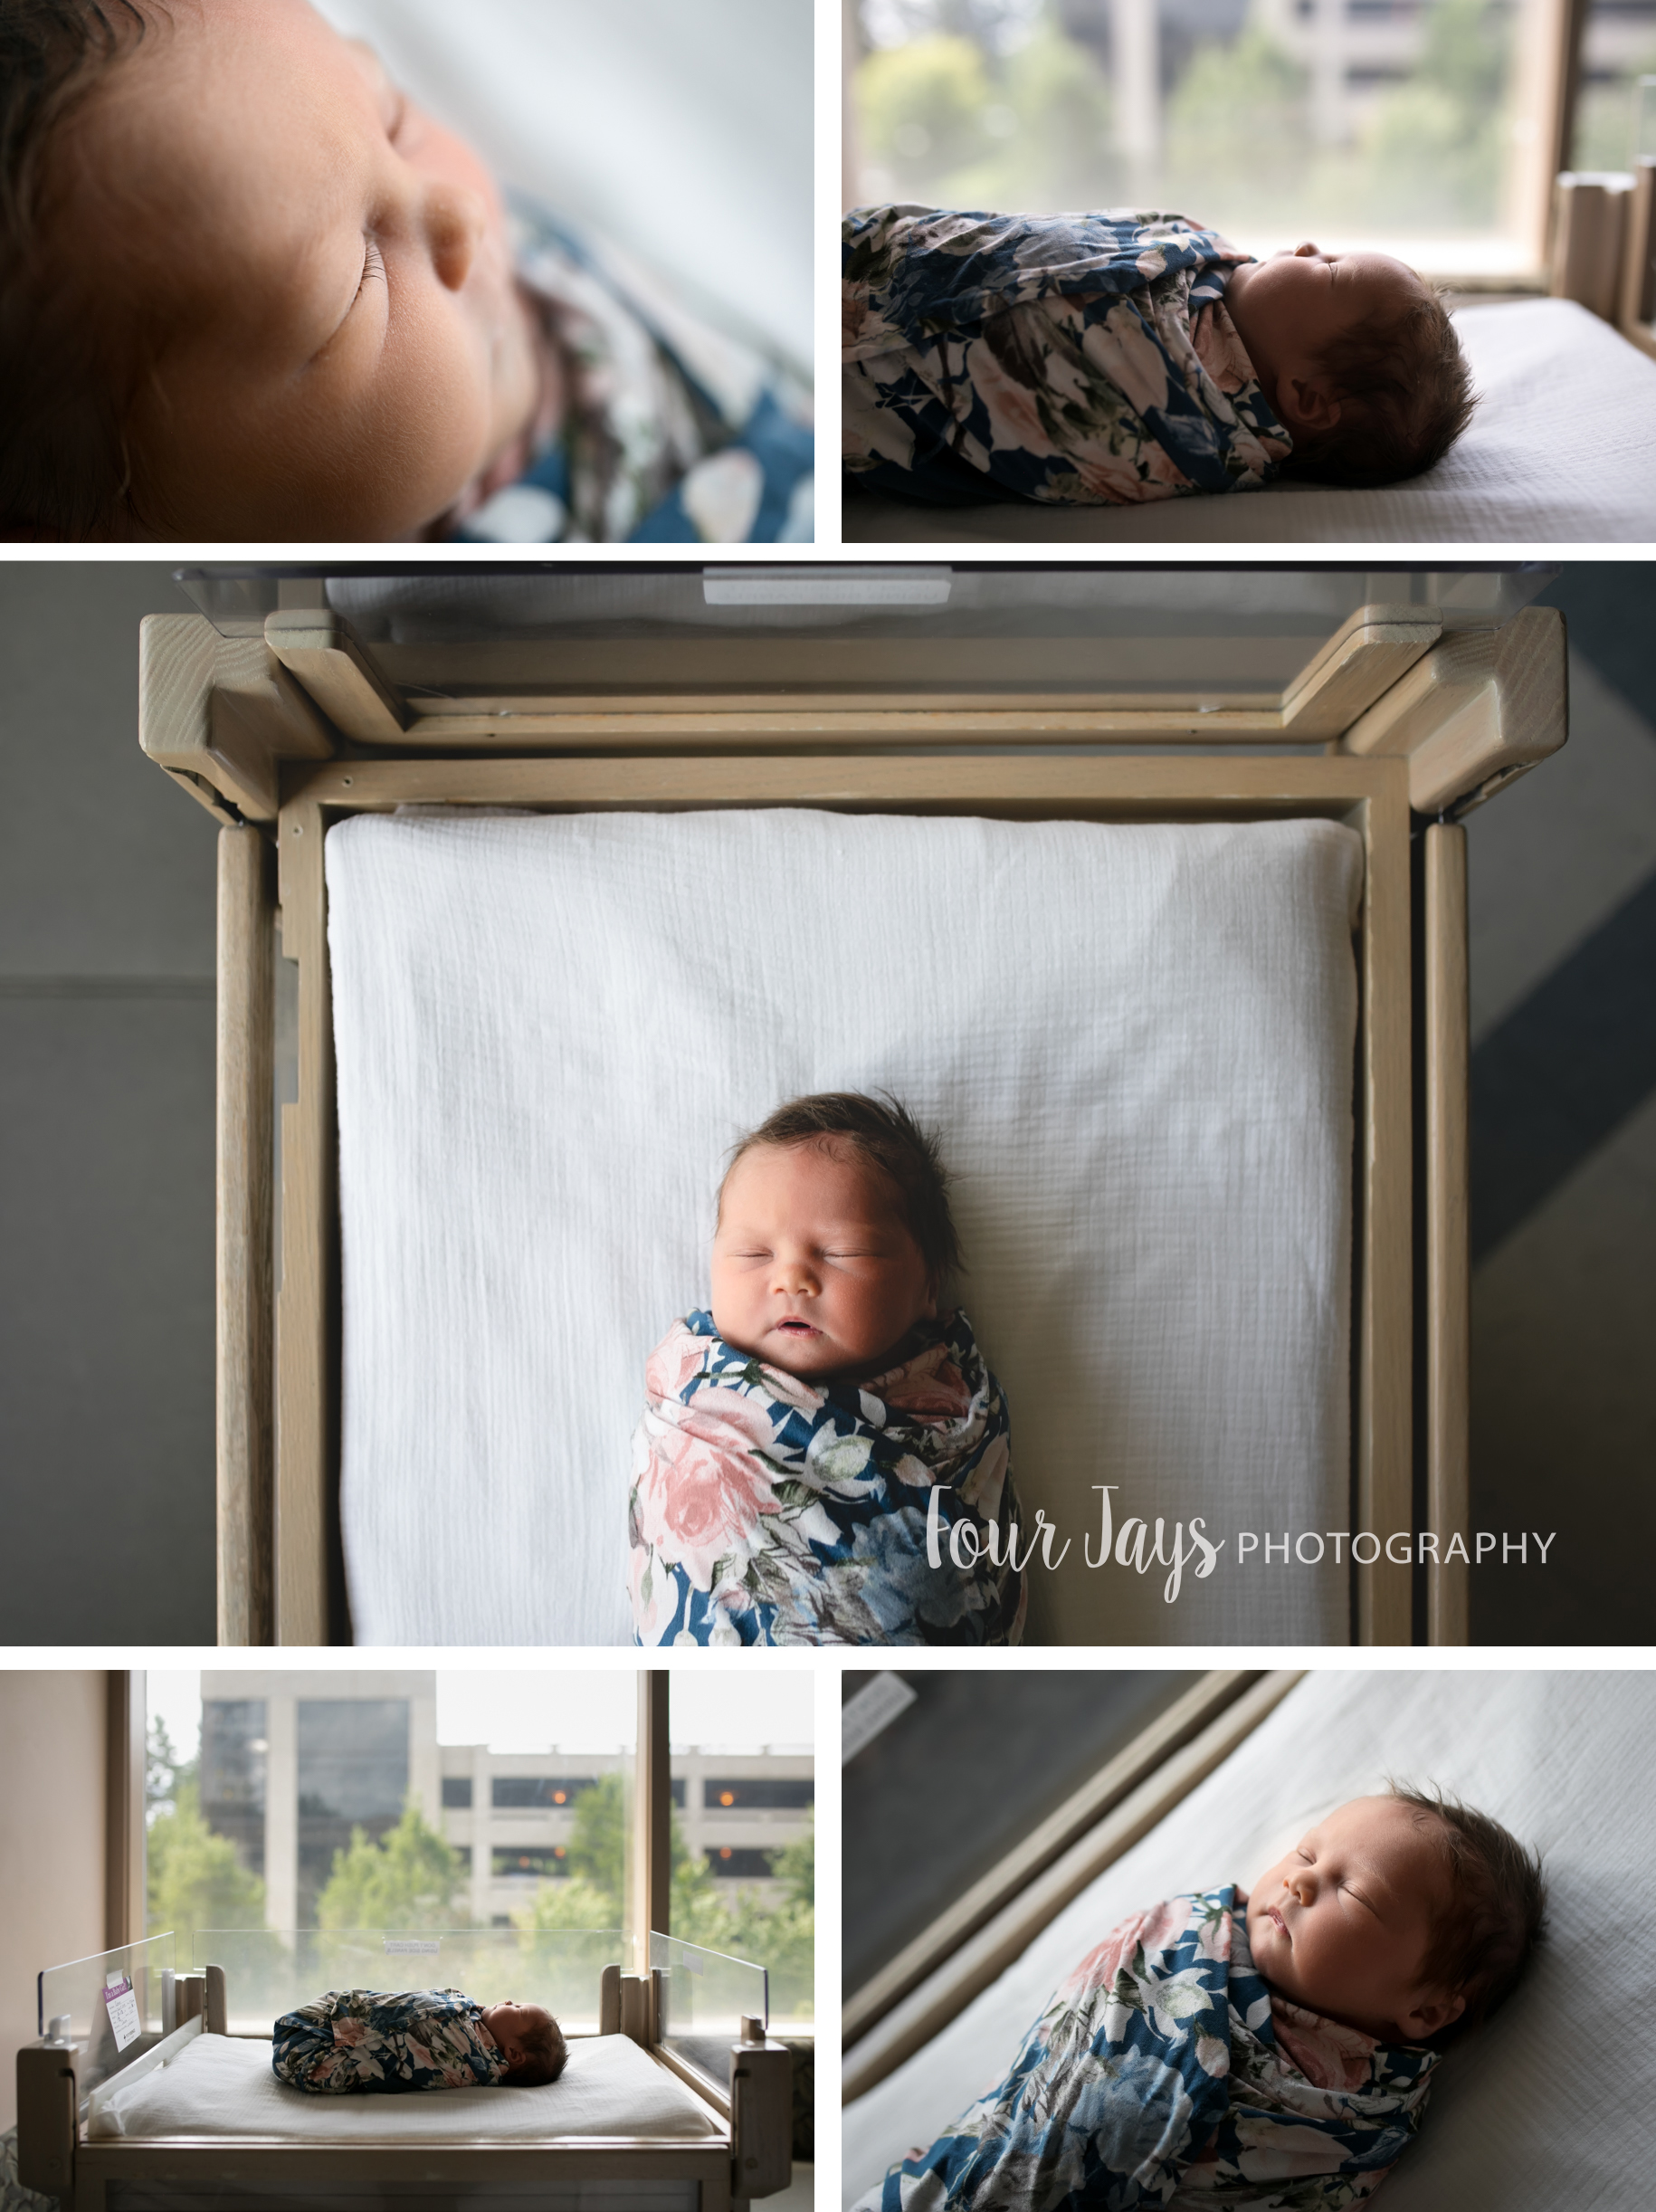 OR St. Vincents hospital best newborn baby portland photographer 2.jpg